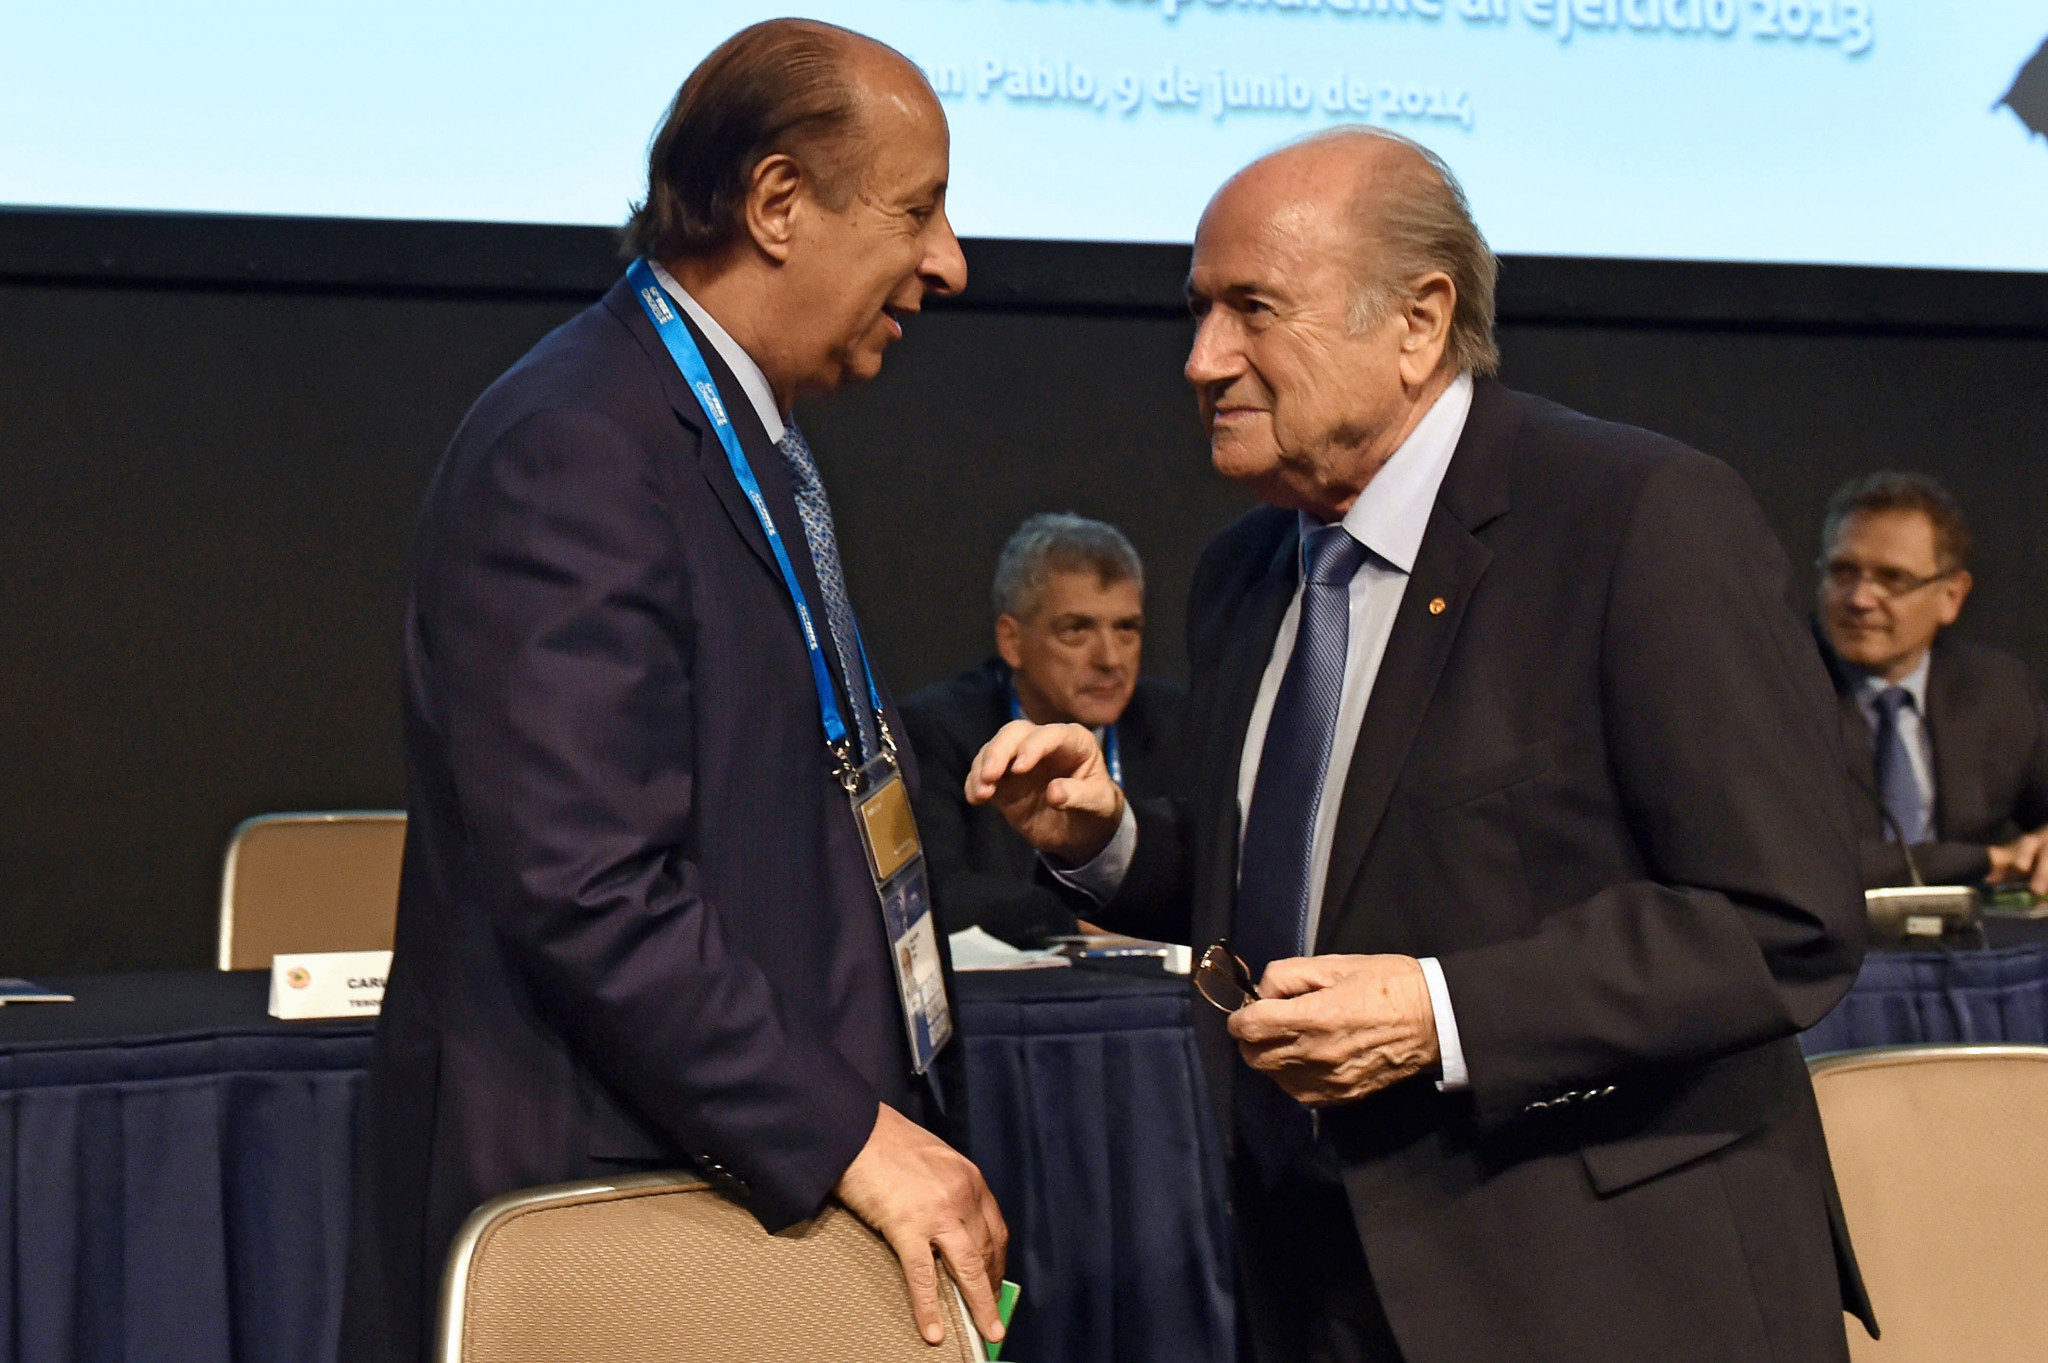 Marco Polo Del Nero, left, pictured with then-FIFA President Sepp Blatter in 2014 ©Getty Images